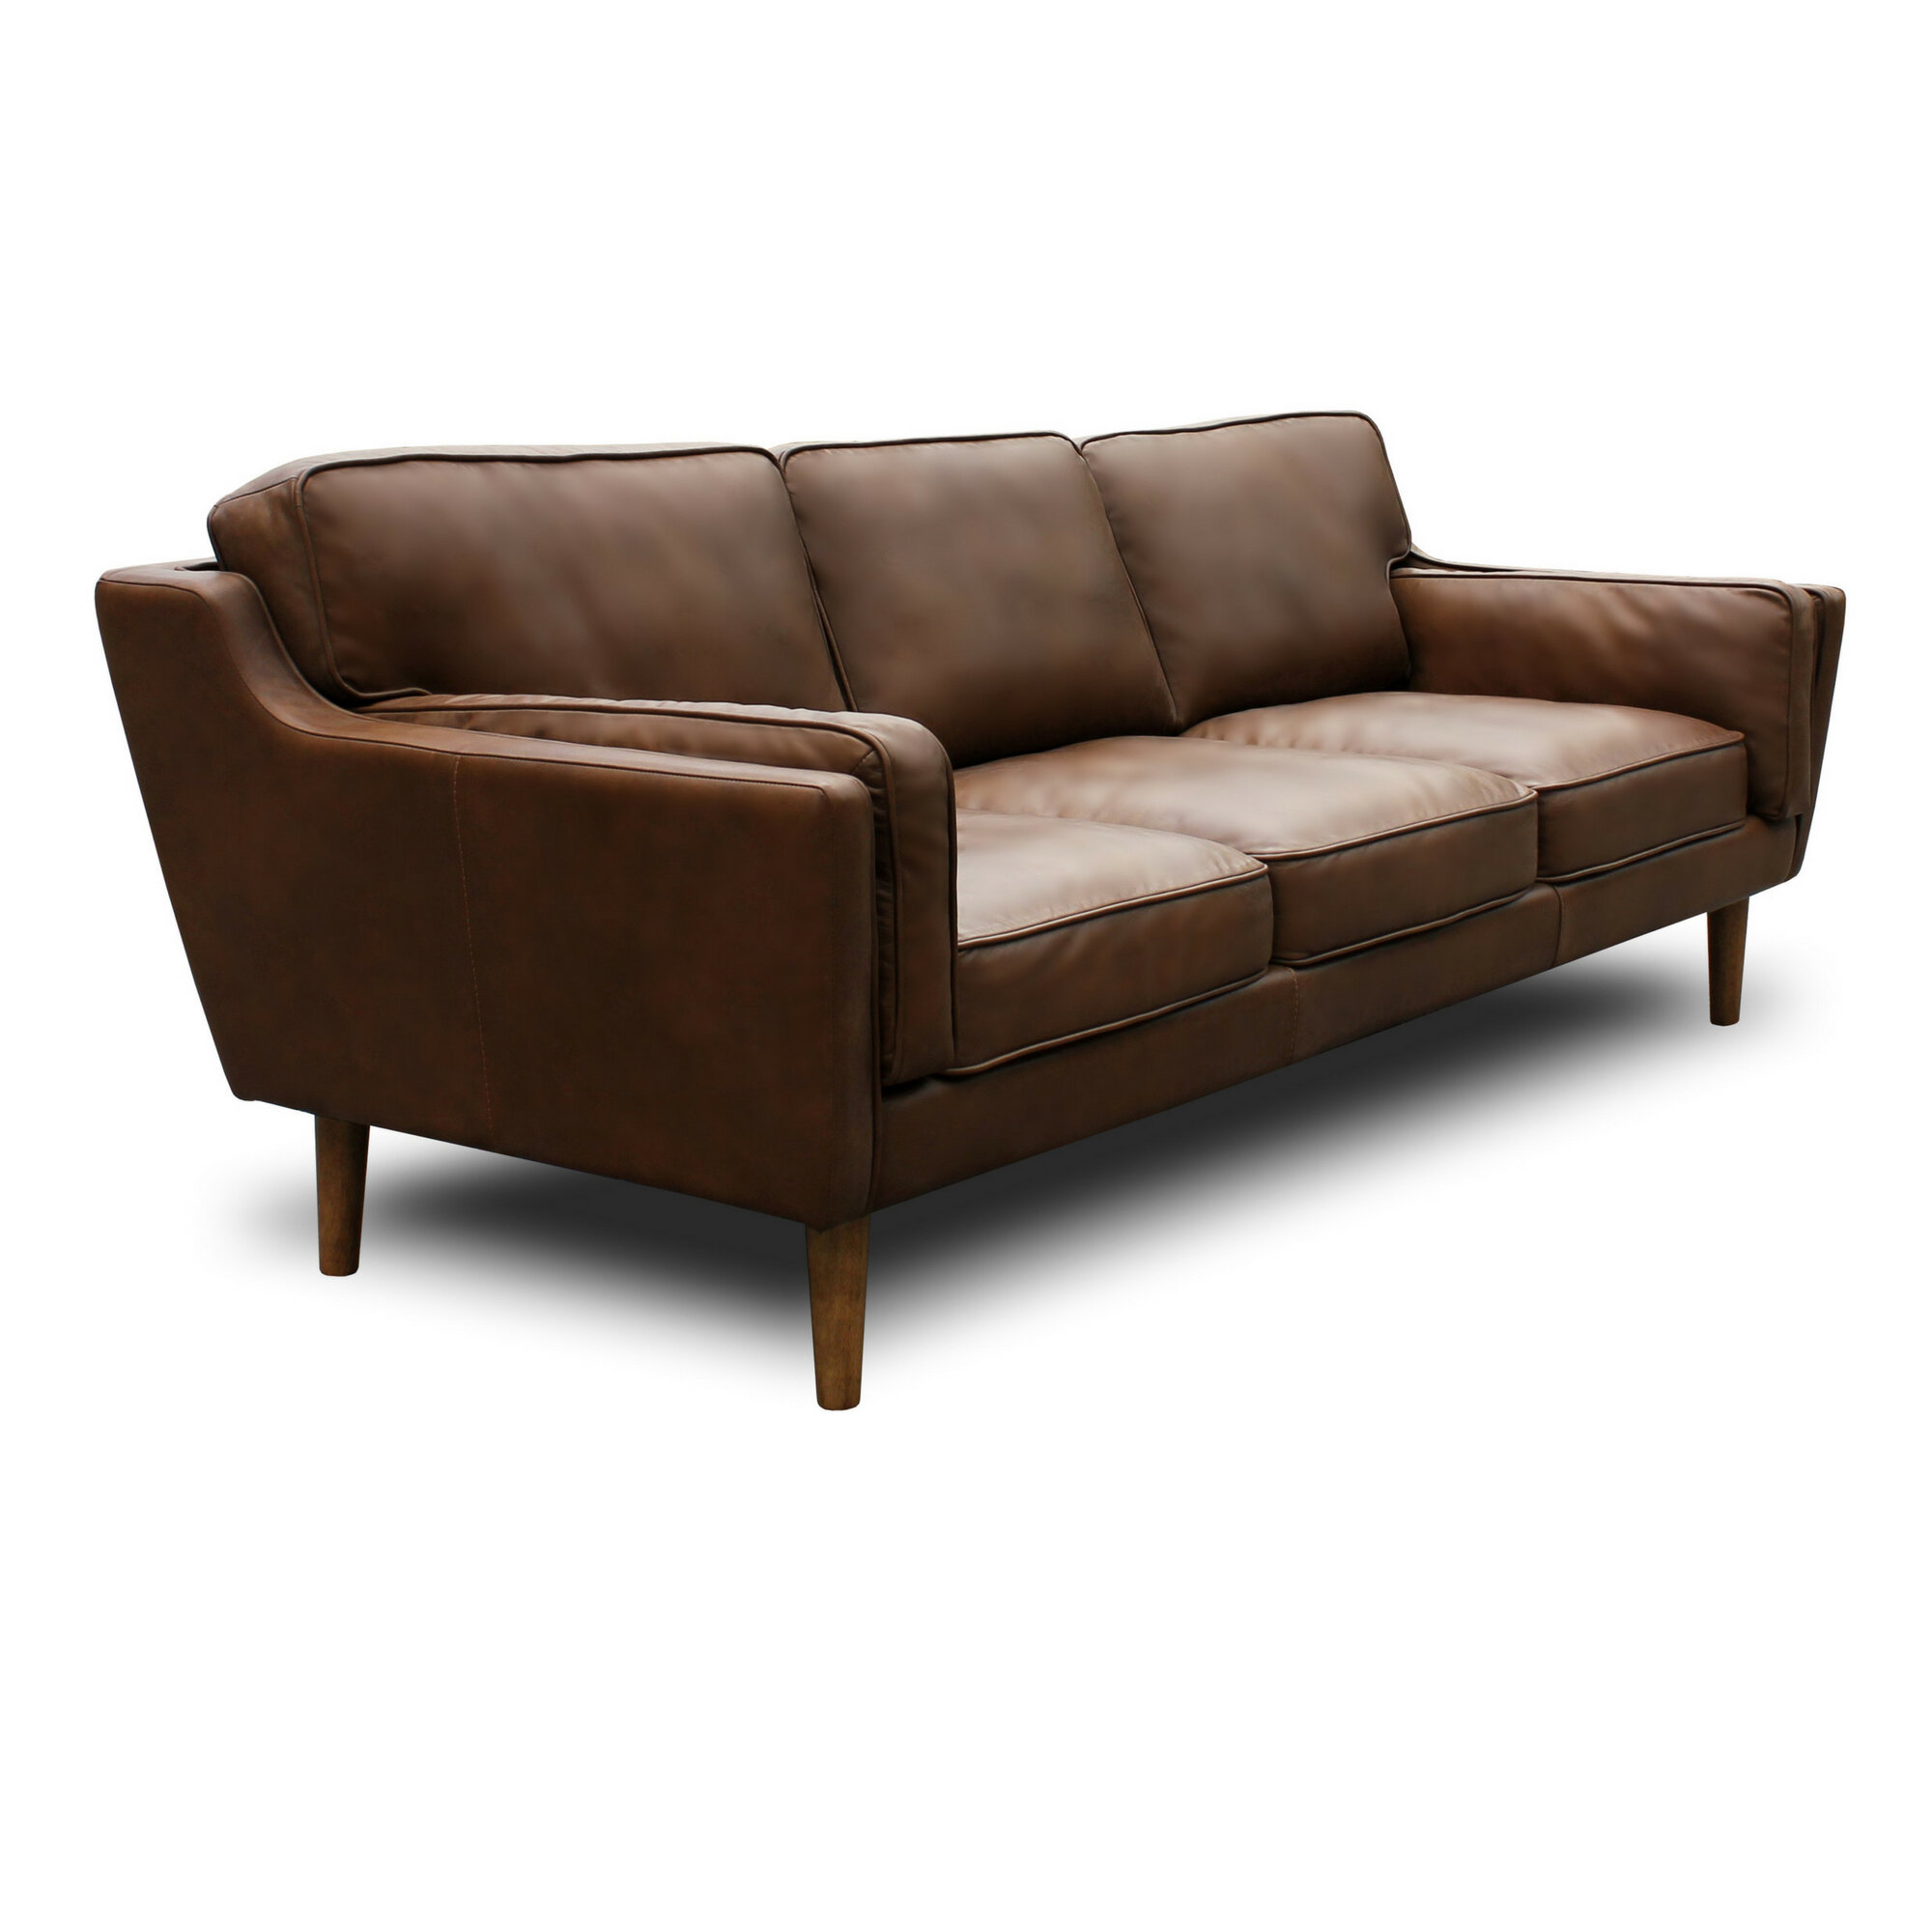 Kaufman mid century modern leather sofa reviews allmodern